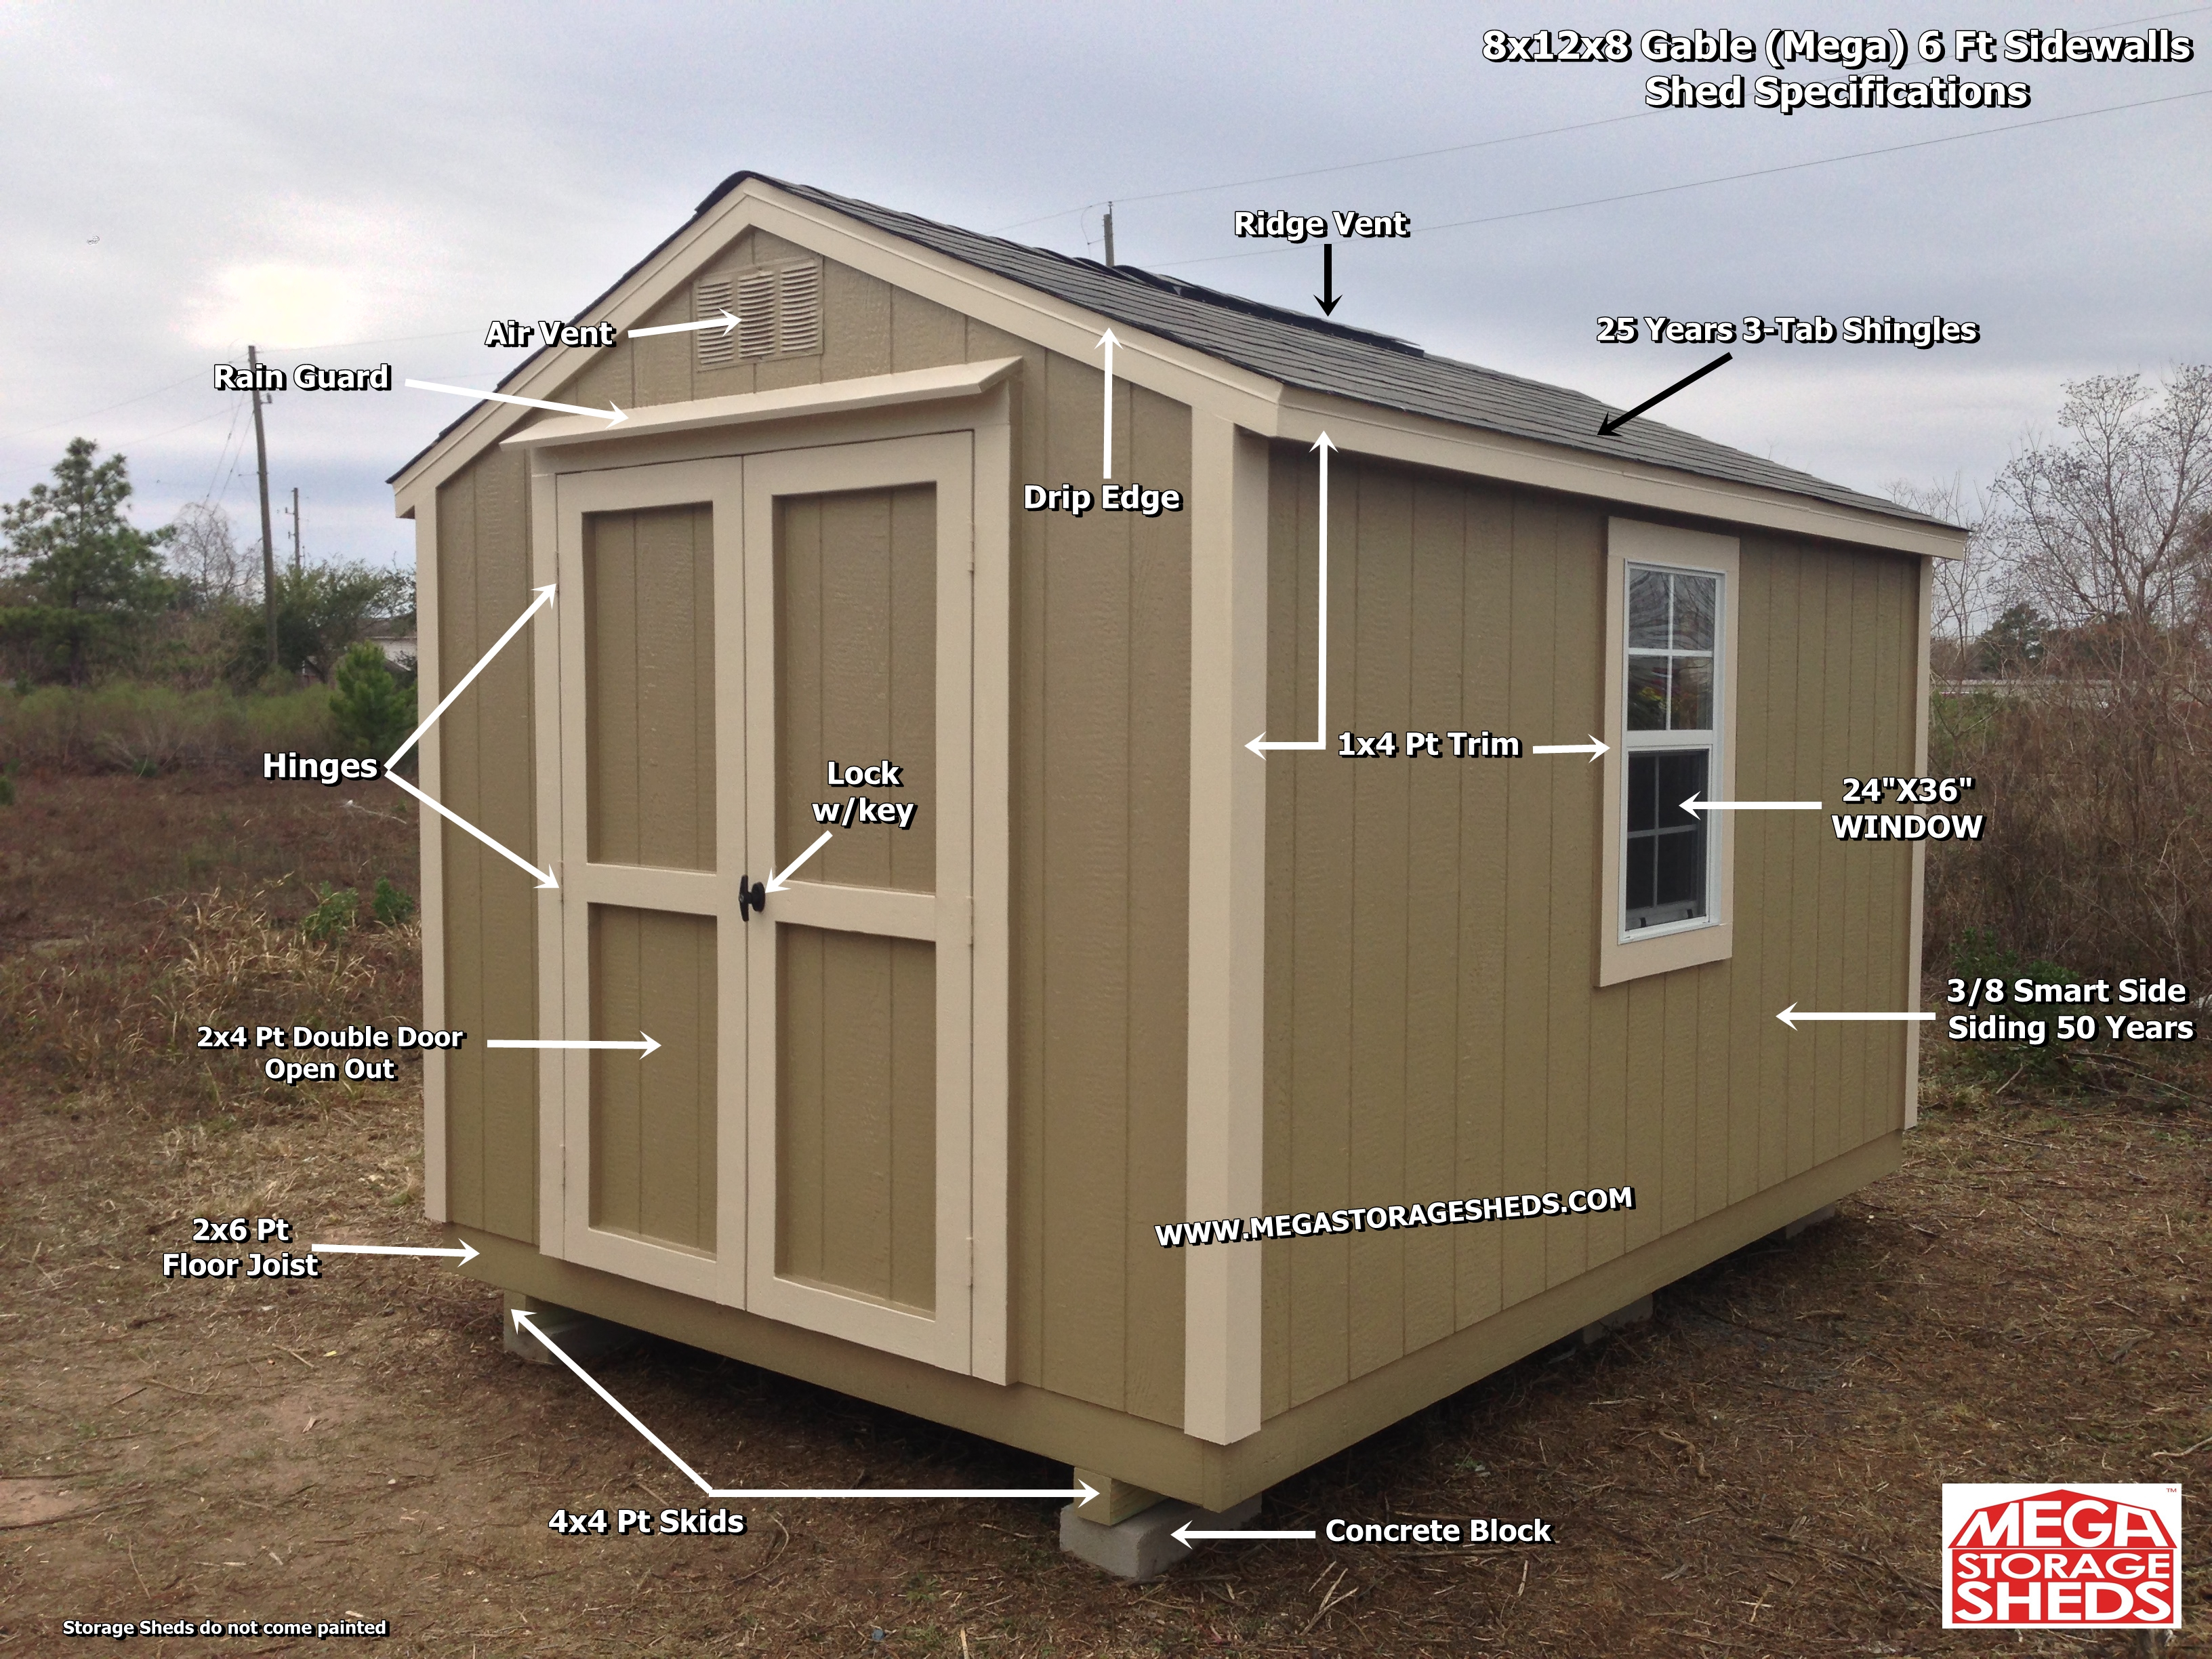 Mega Storage Sheds Shed Specifications within dimensions 3264 X 2448